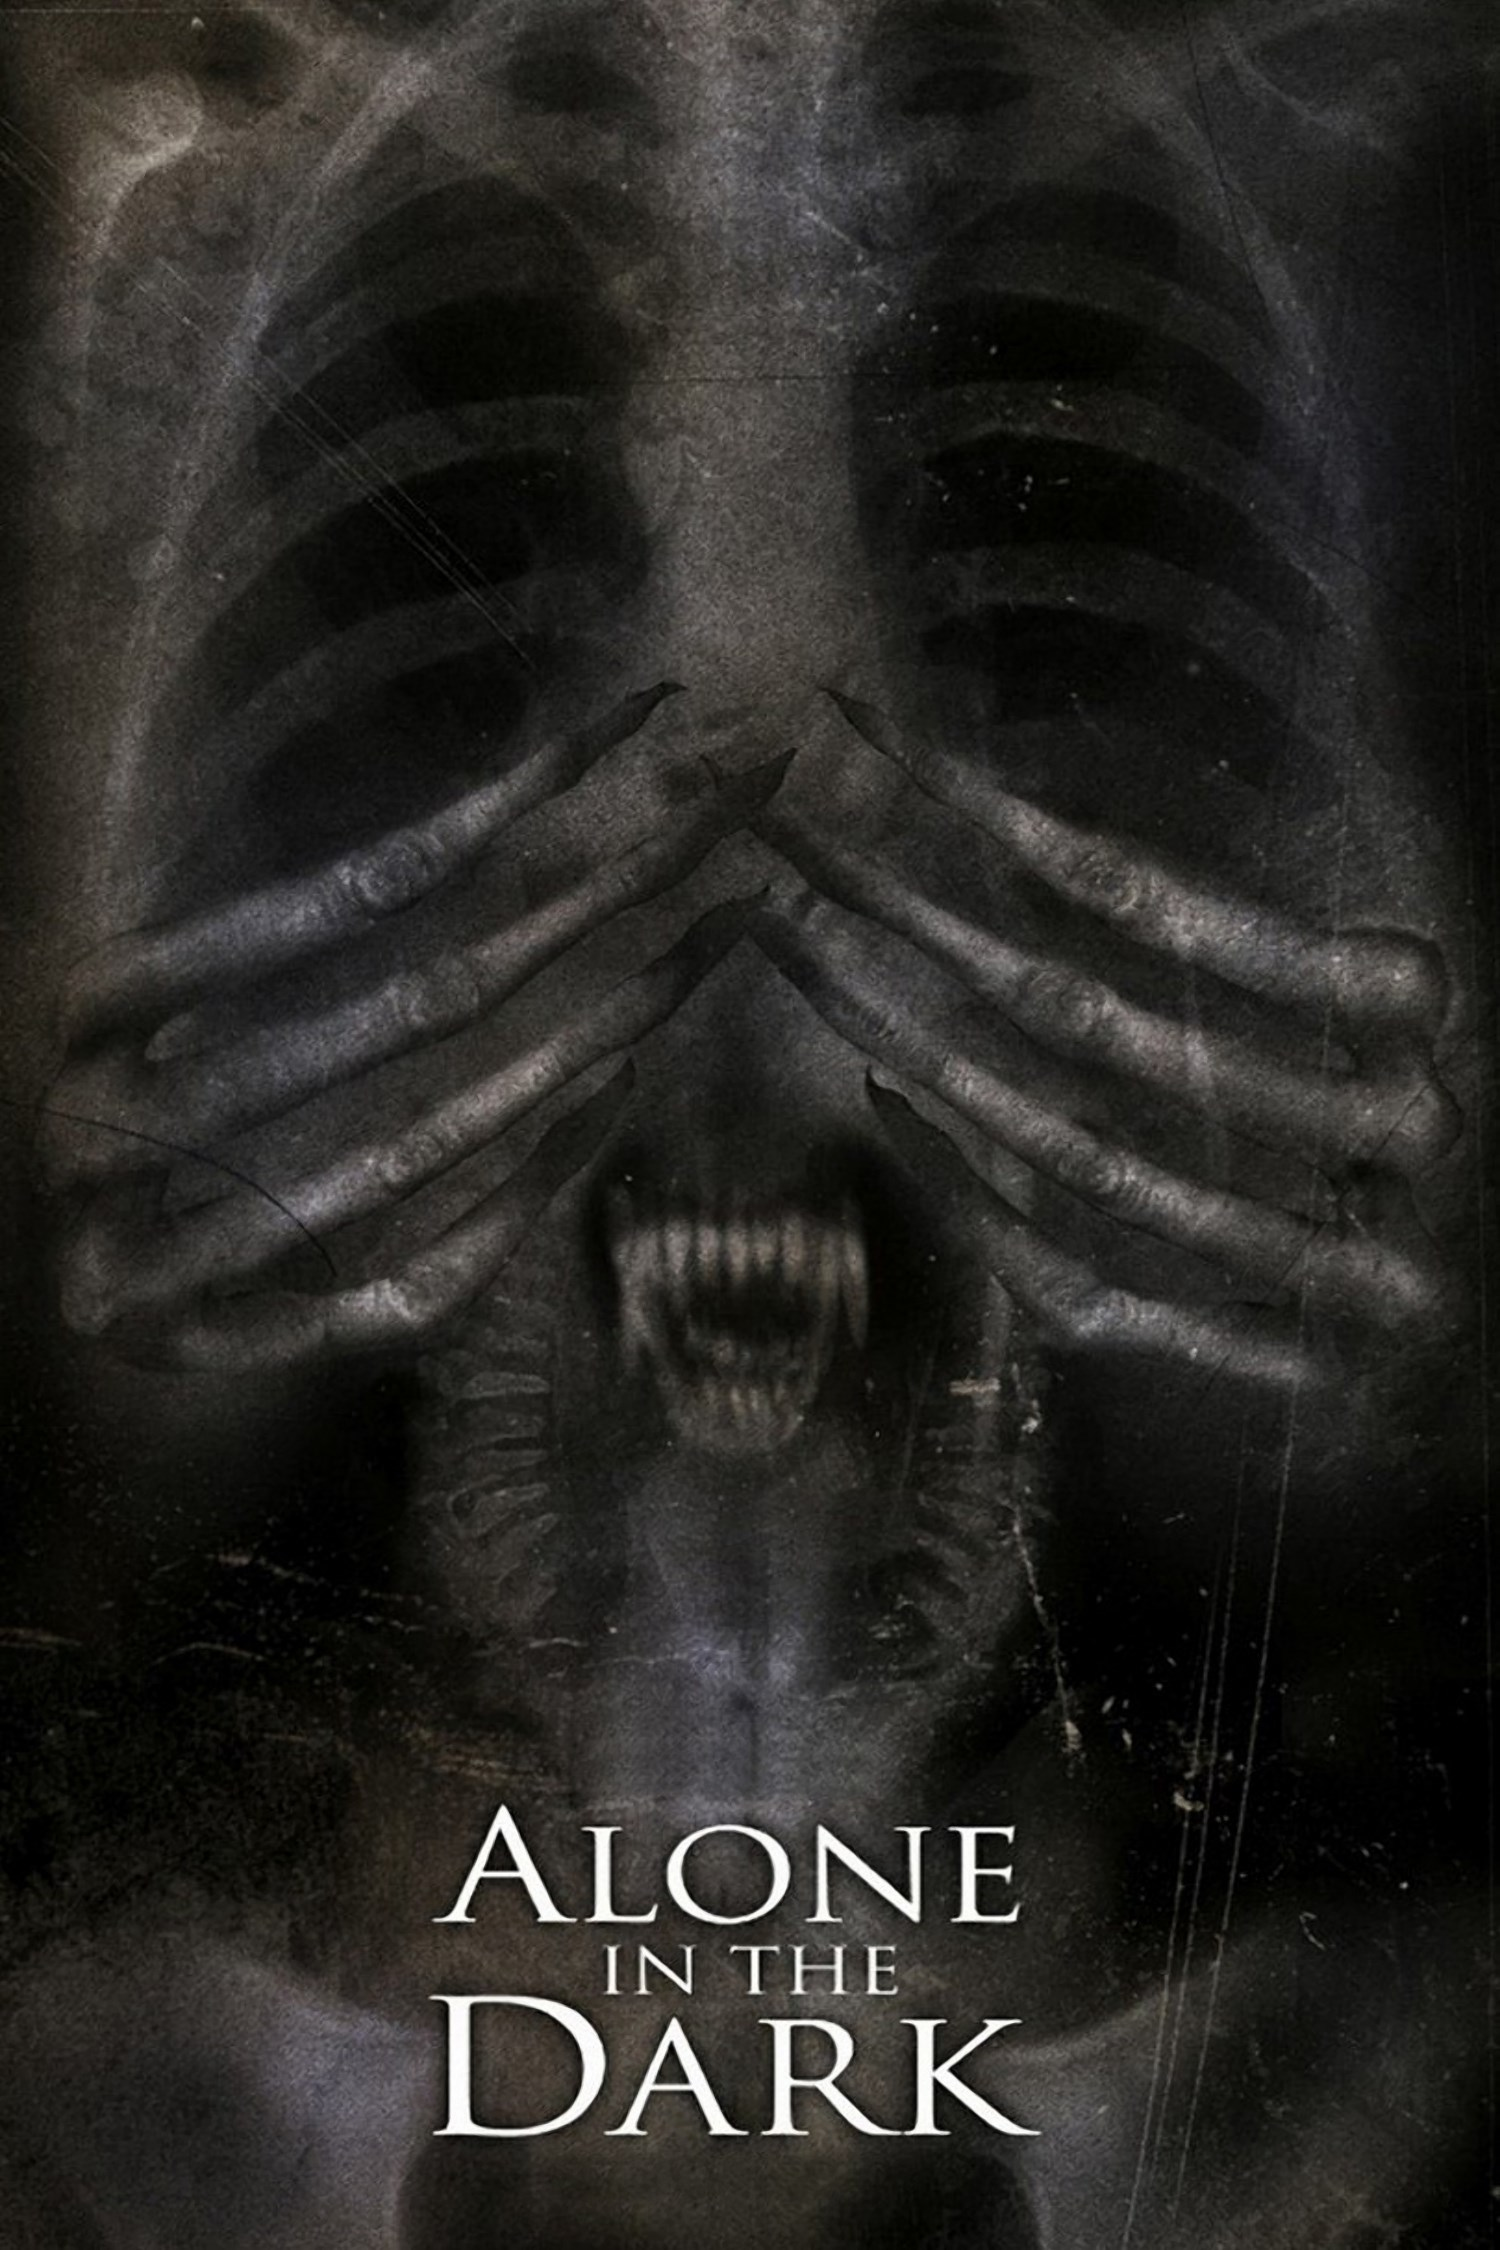 Alone.in.the.dark 2017 dvdrip.ac3 eng axxo greek subs